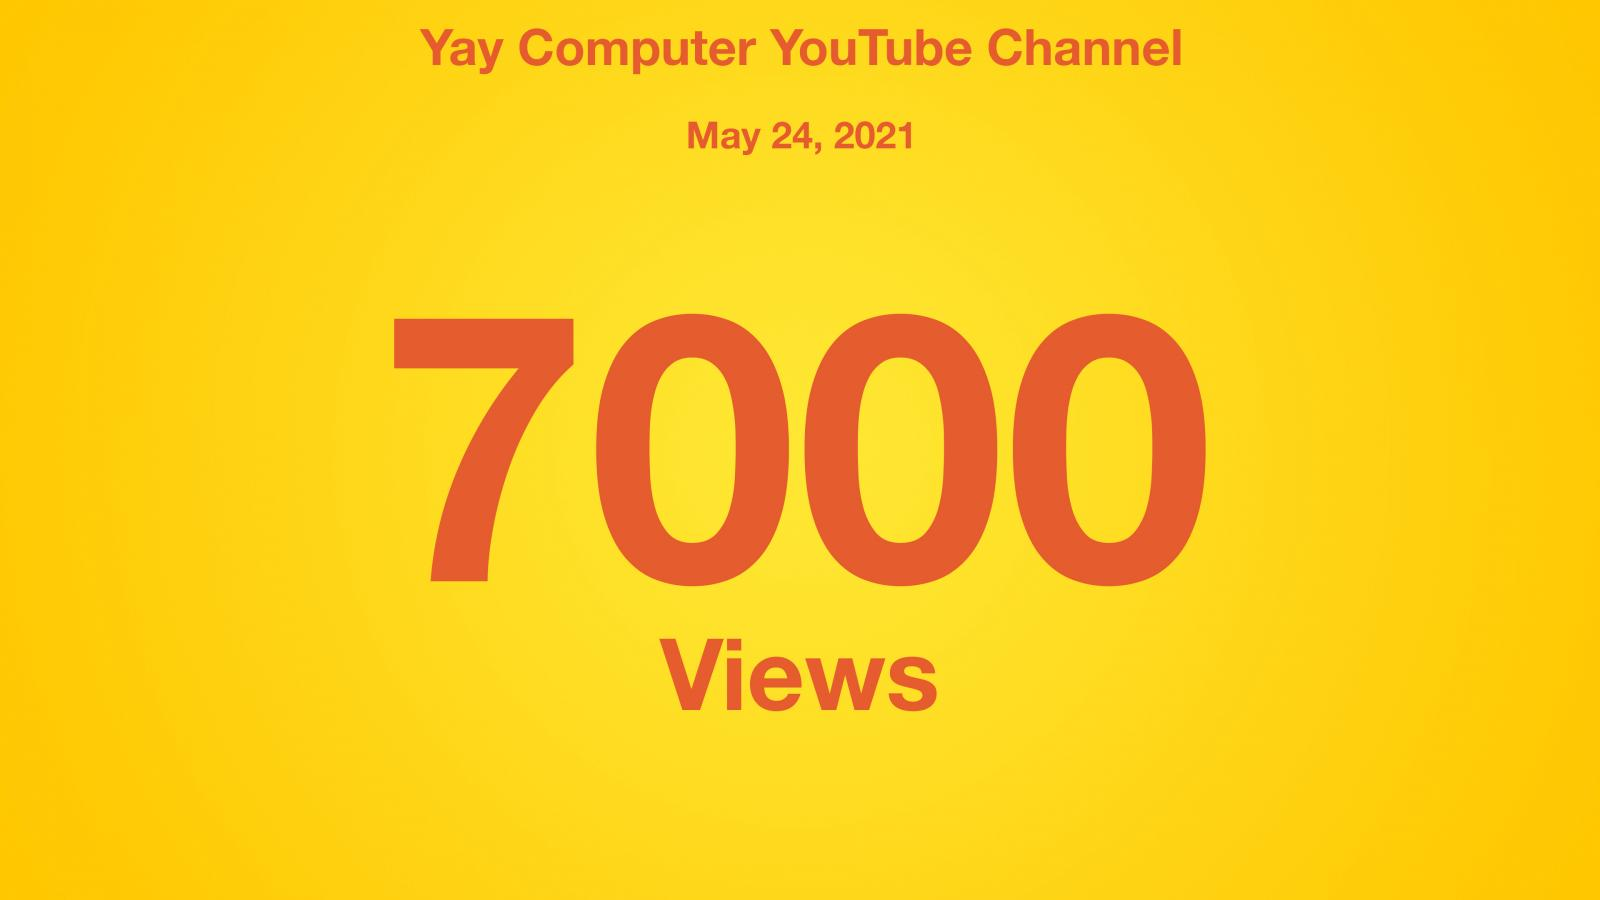 Yay Computer YouTube Channel, May 24 2021, 7000 Views